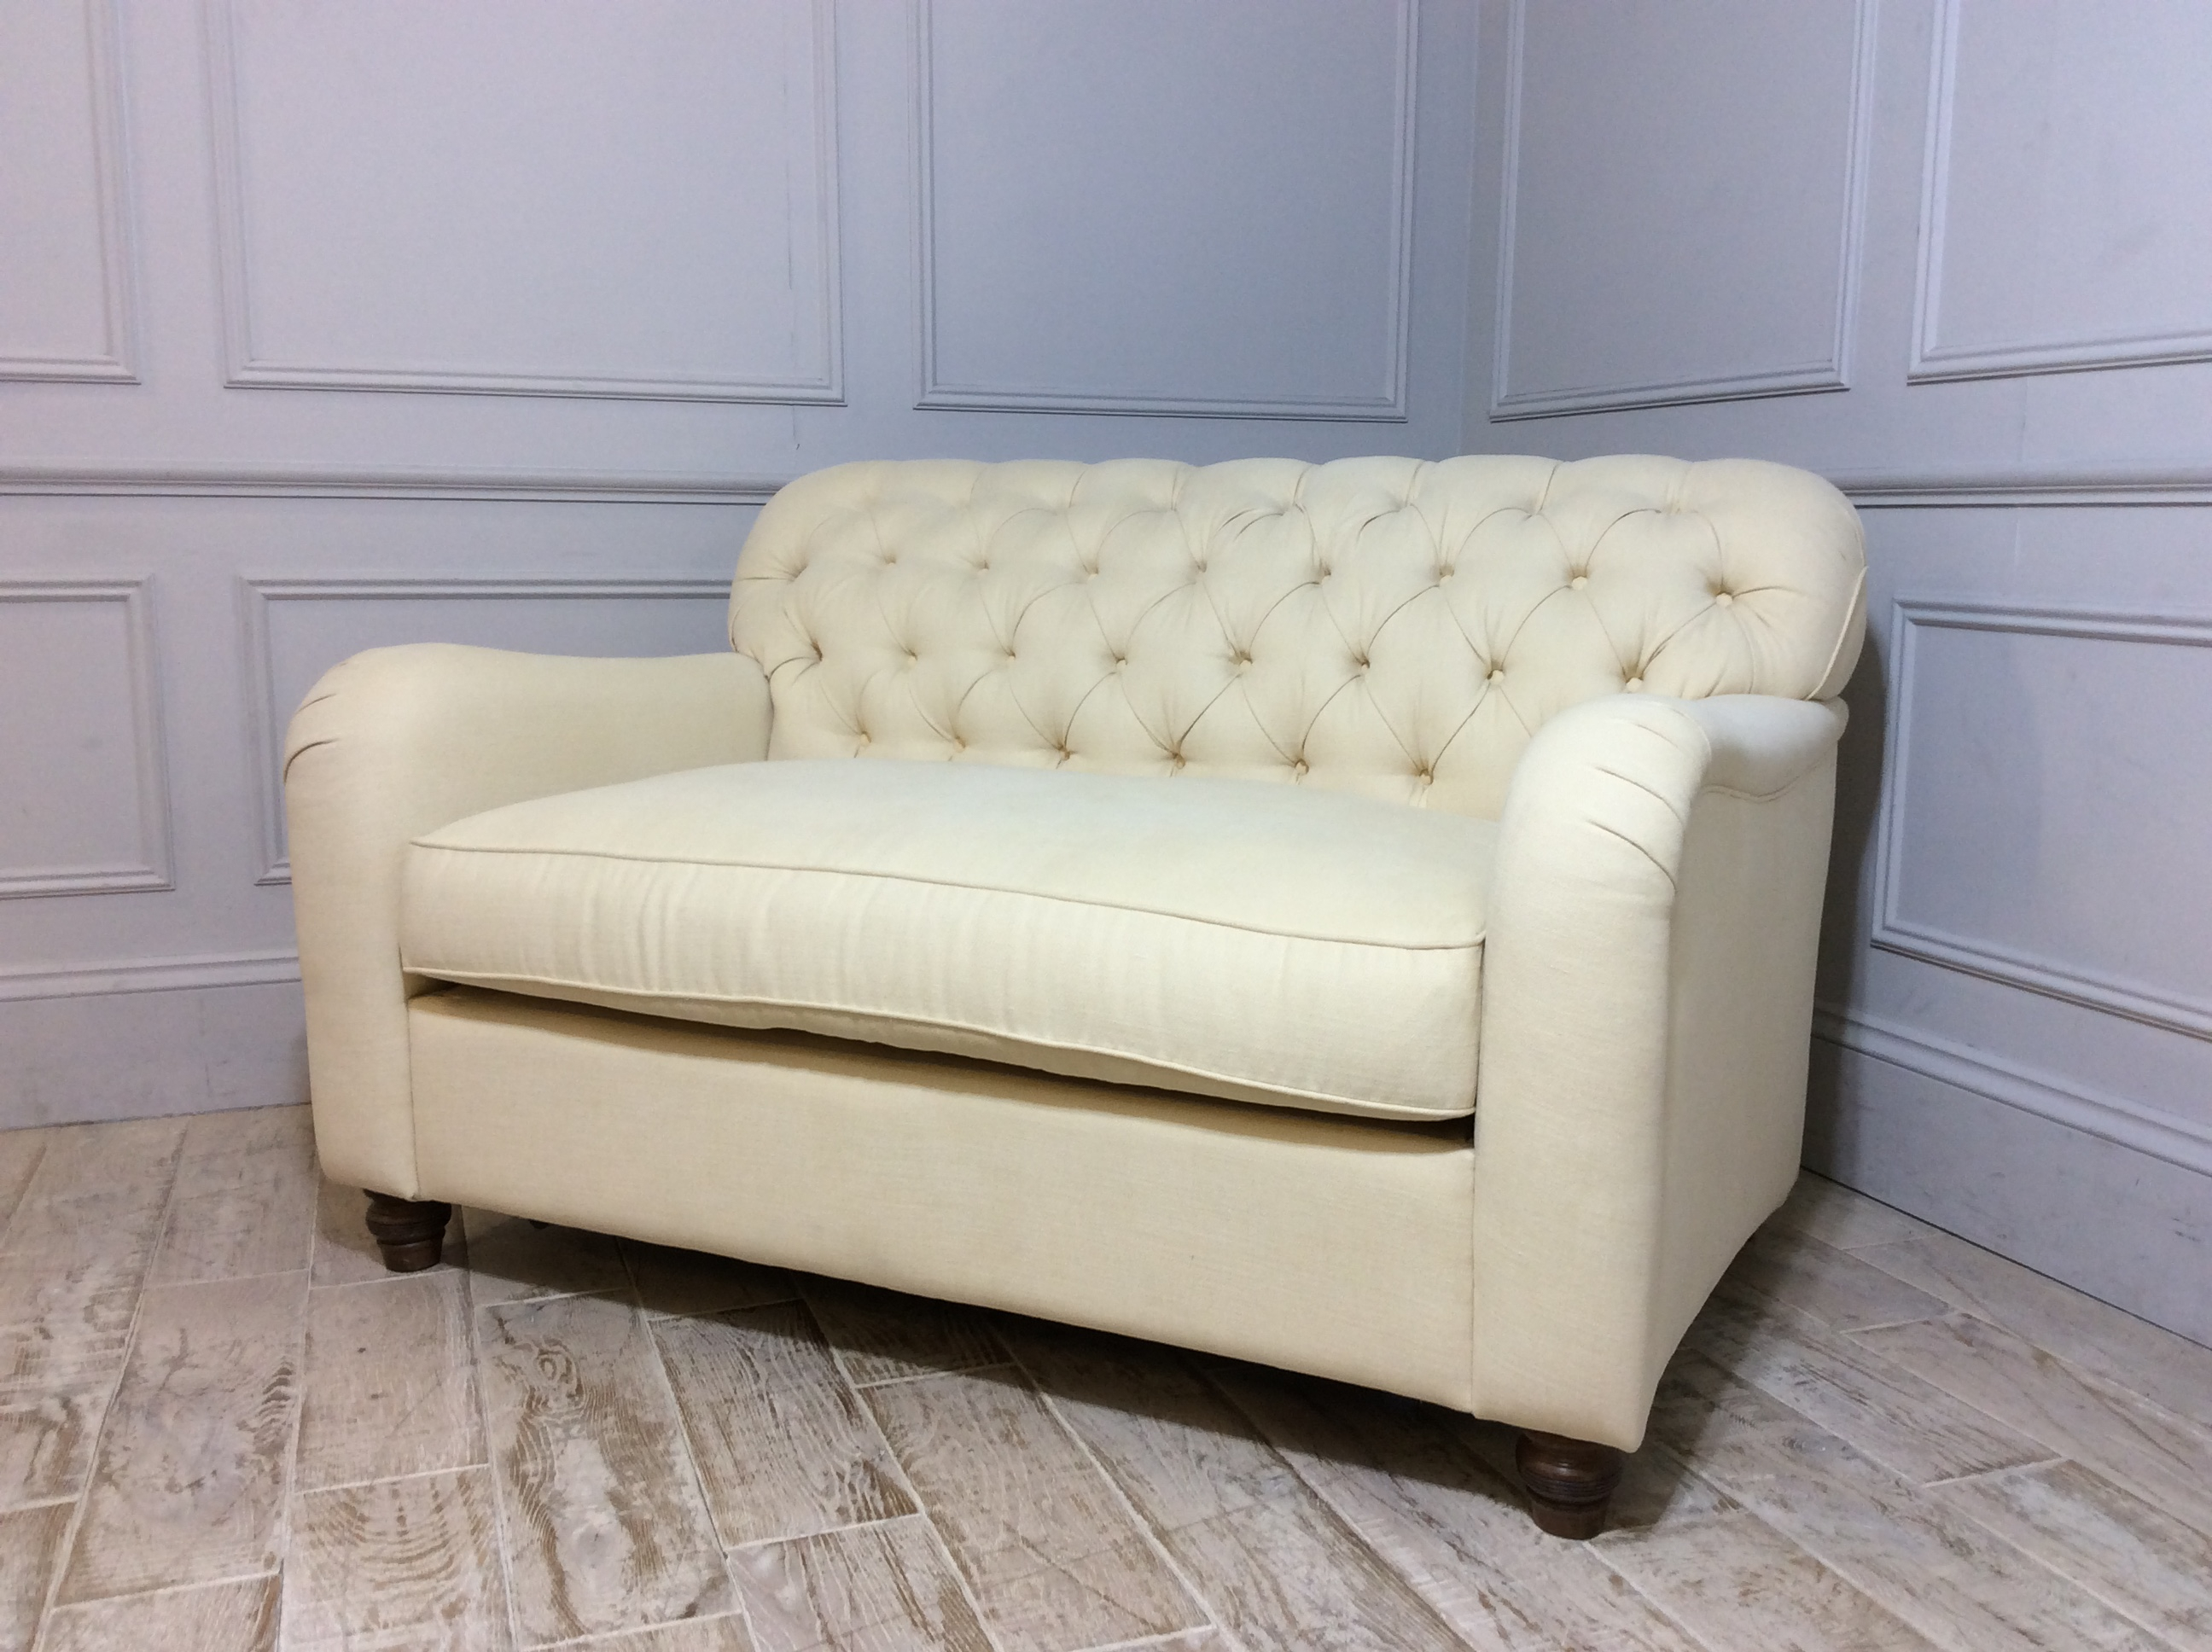 Bakewell Loveseat Fabric Sofa Bed in Buttermilk